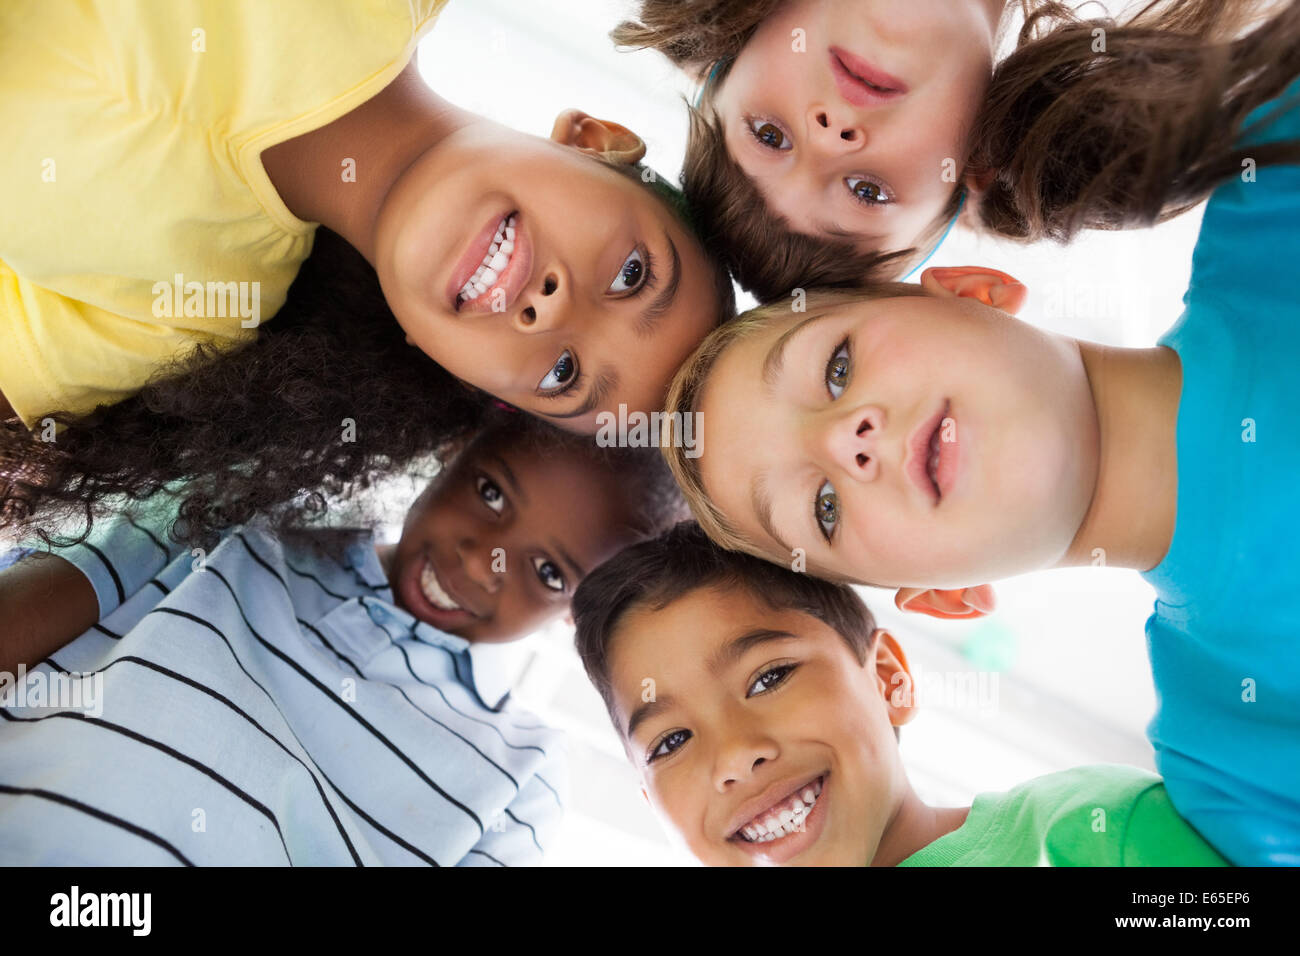 Cute schoolchildren smiling at camera from above - Stock Image